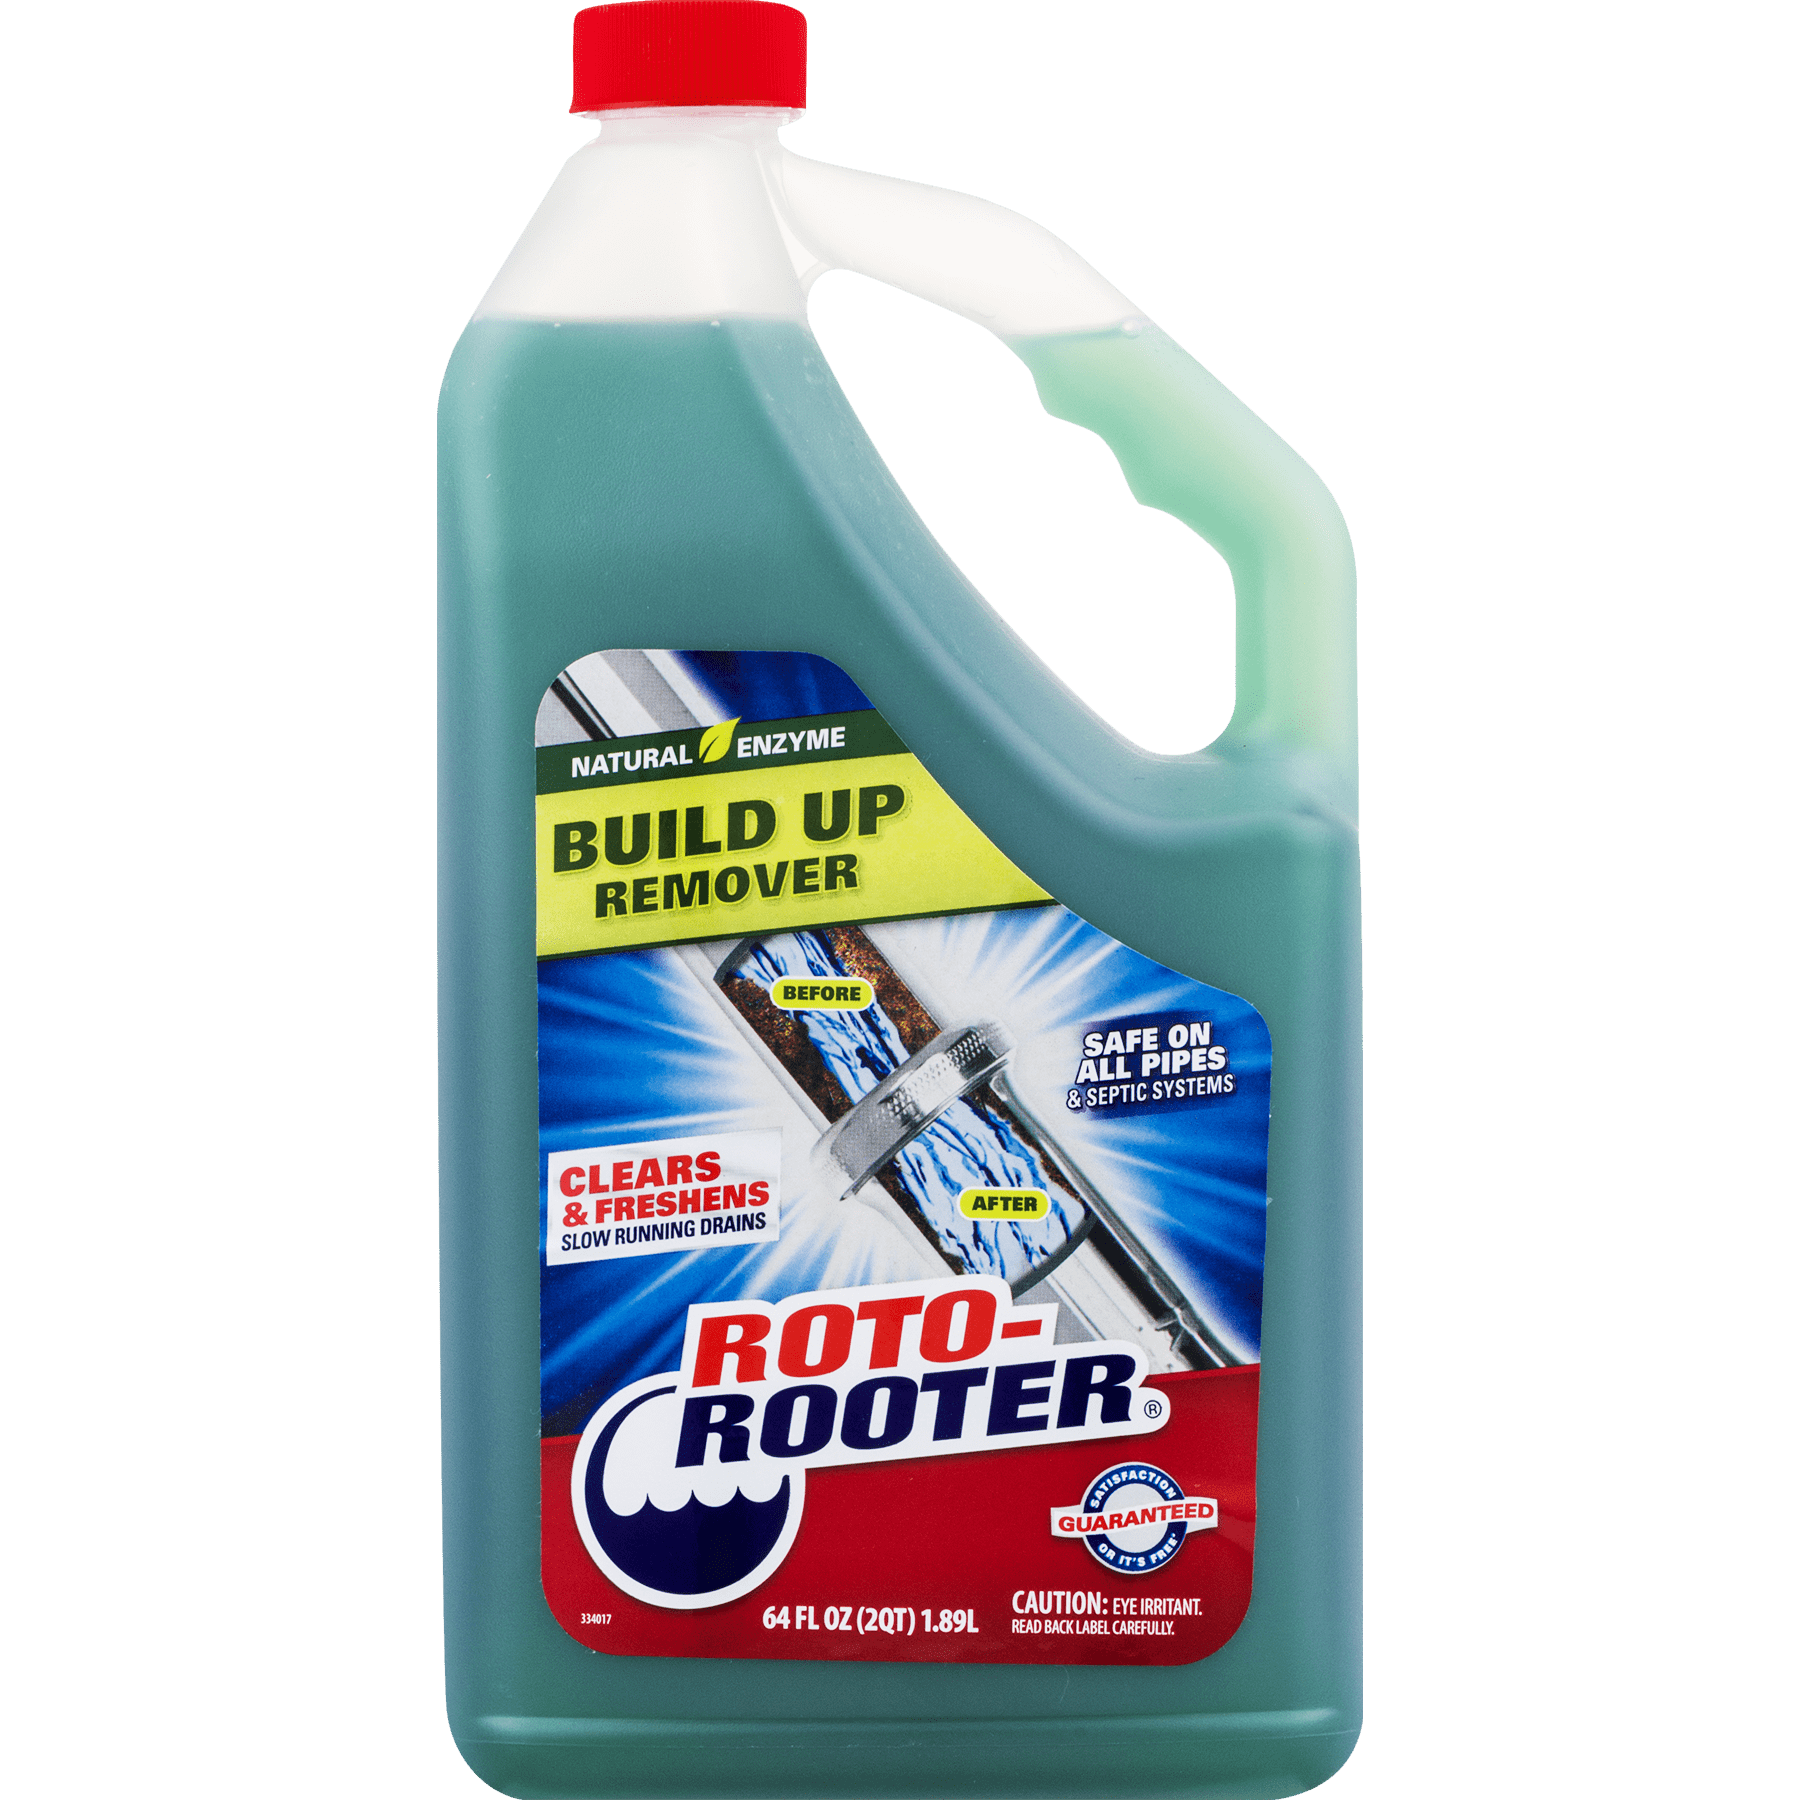 Roto-Rooter Build Up Remover - Walmart.com